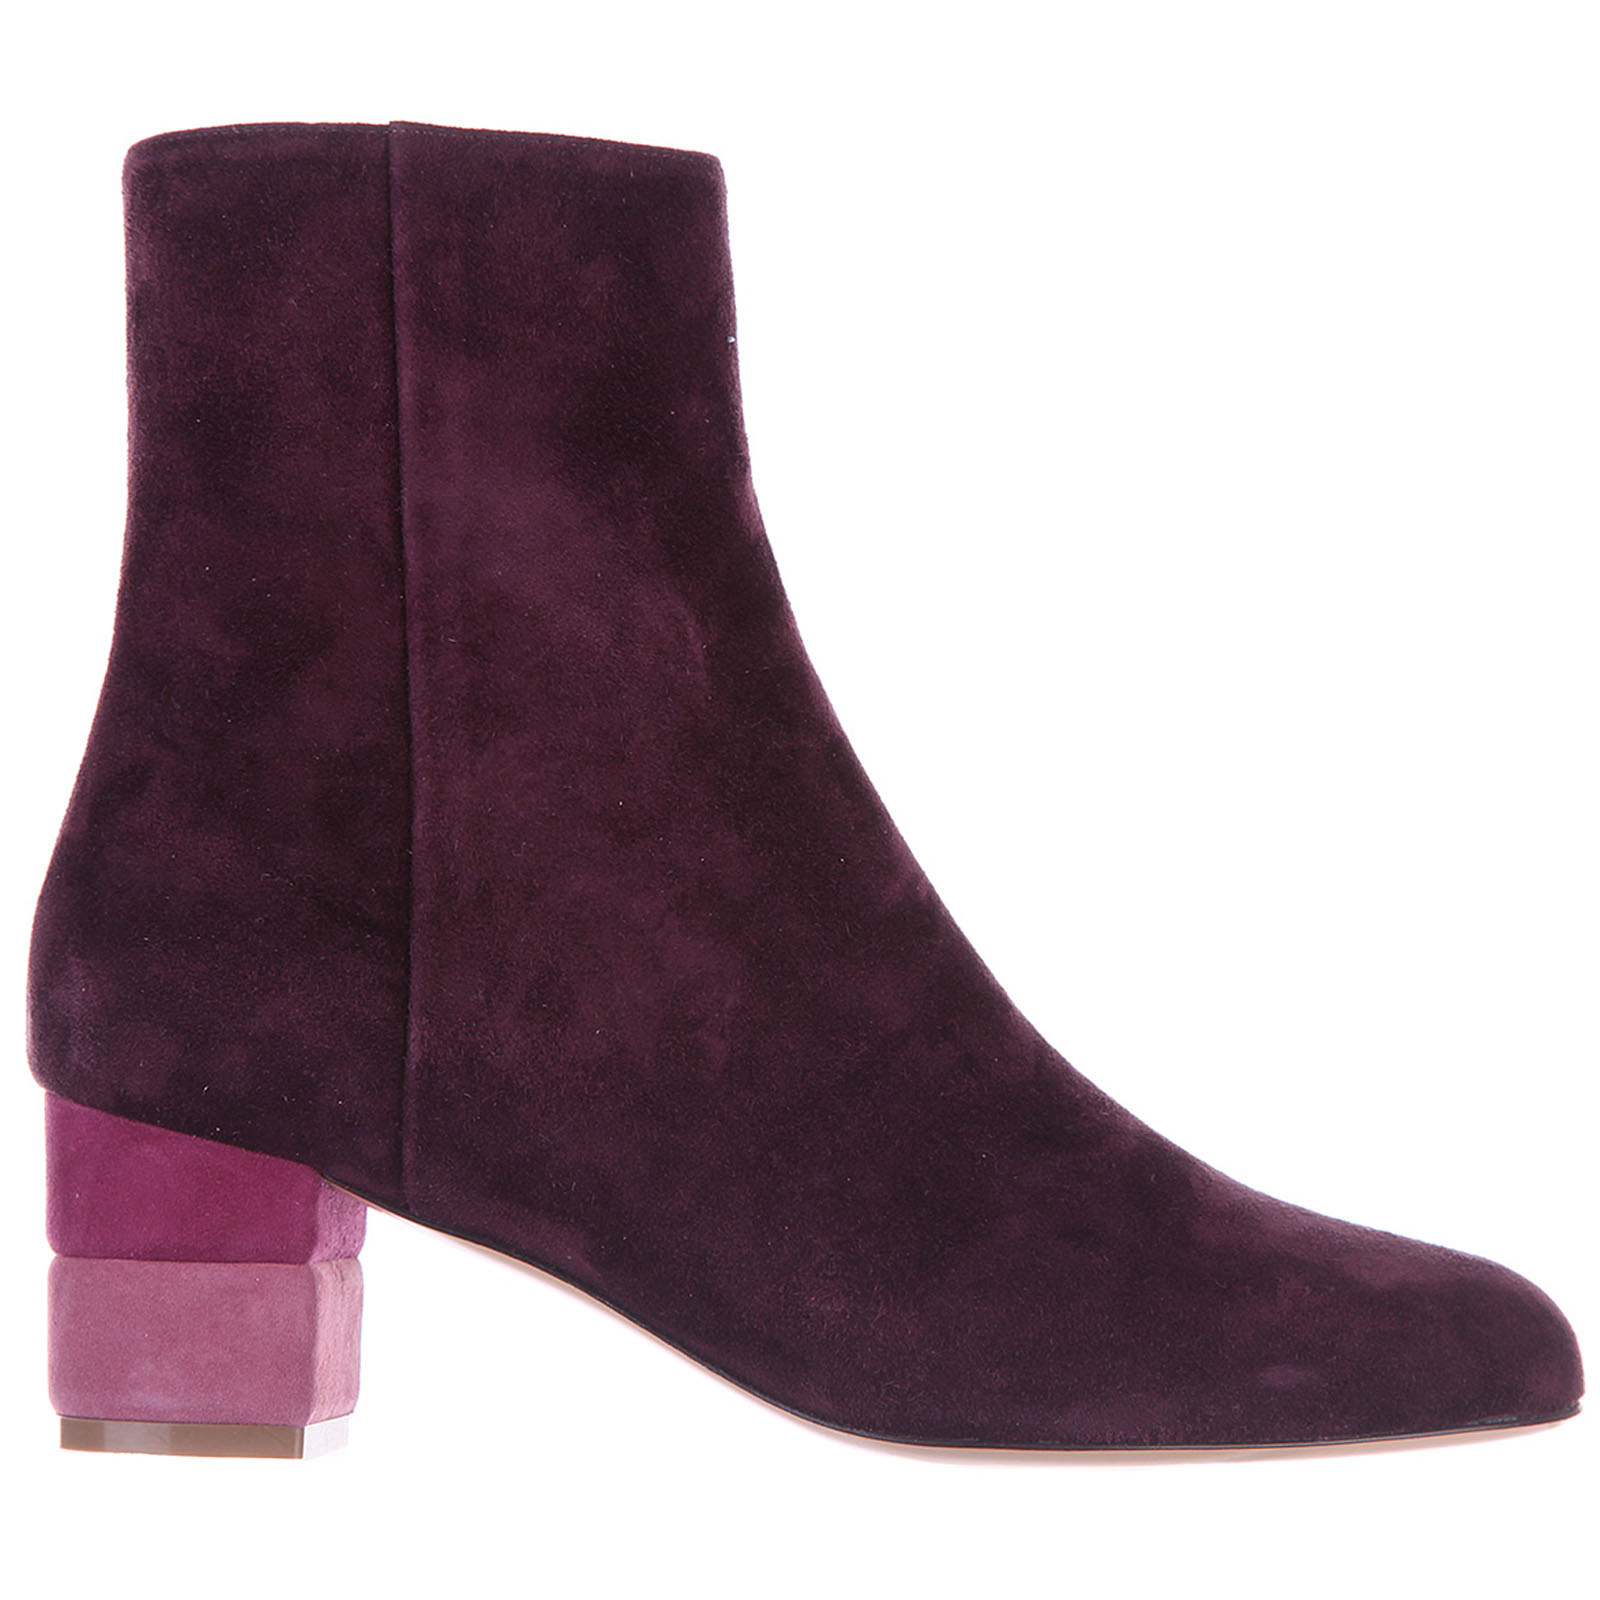 Women's suede ankle boots booties loris 55 calf